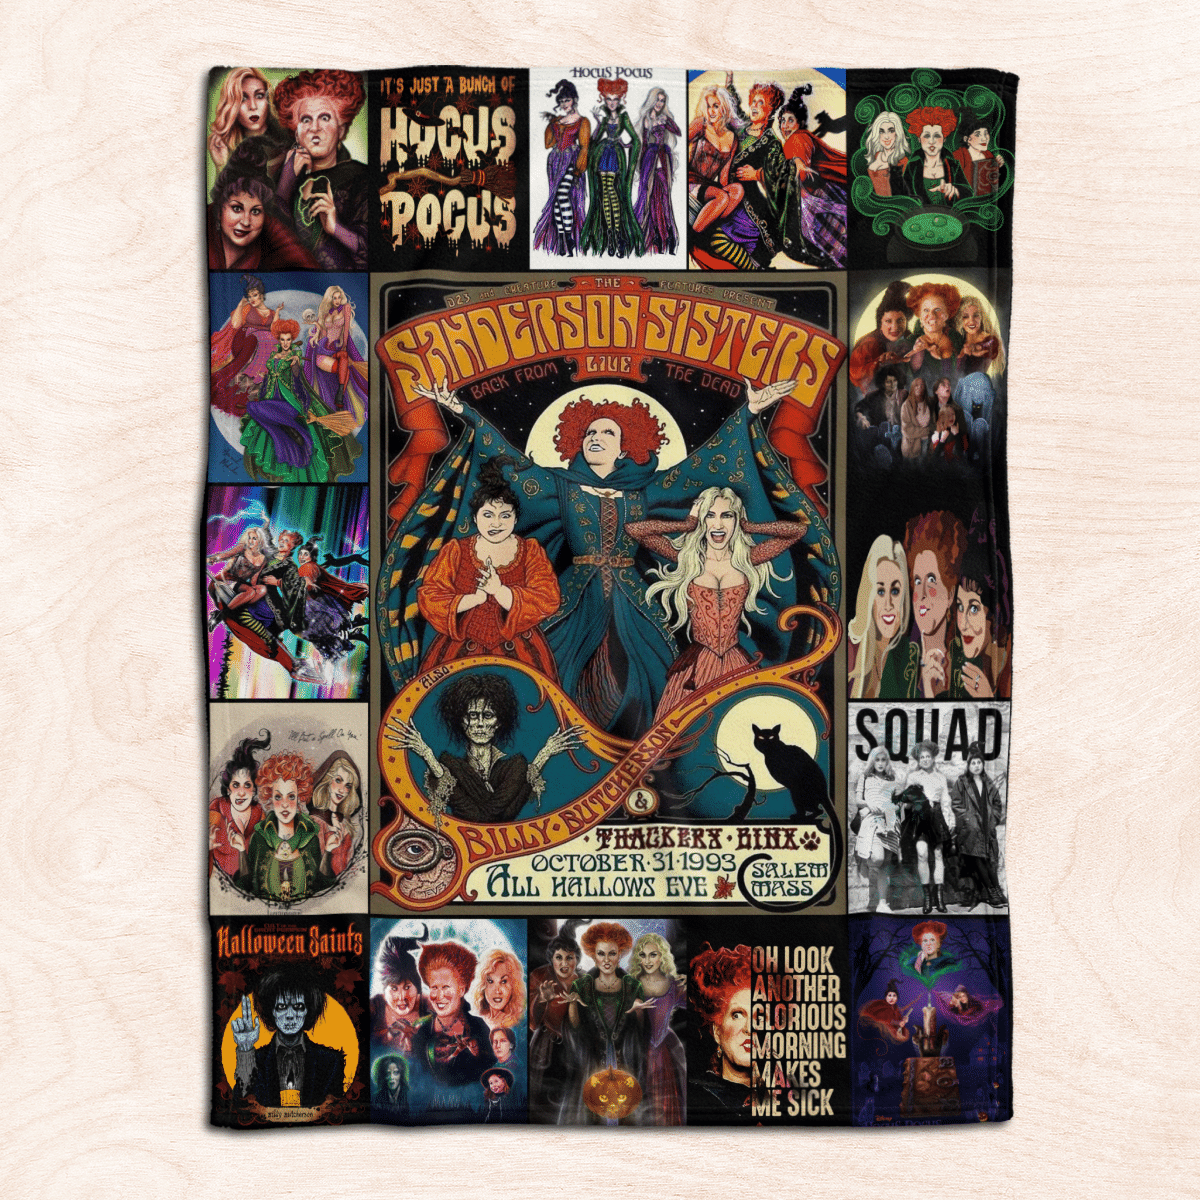 Hocus Pocus in a world full of basic witches be a sanderson blanket 1